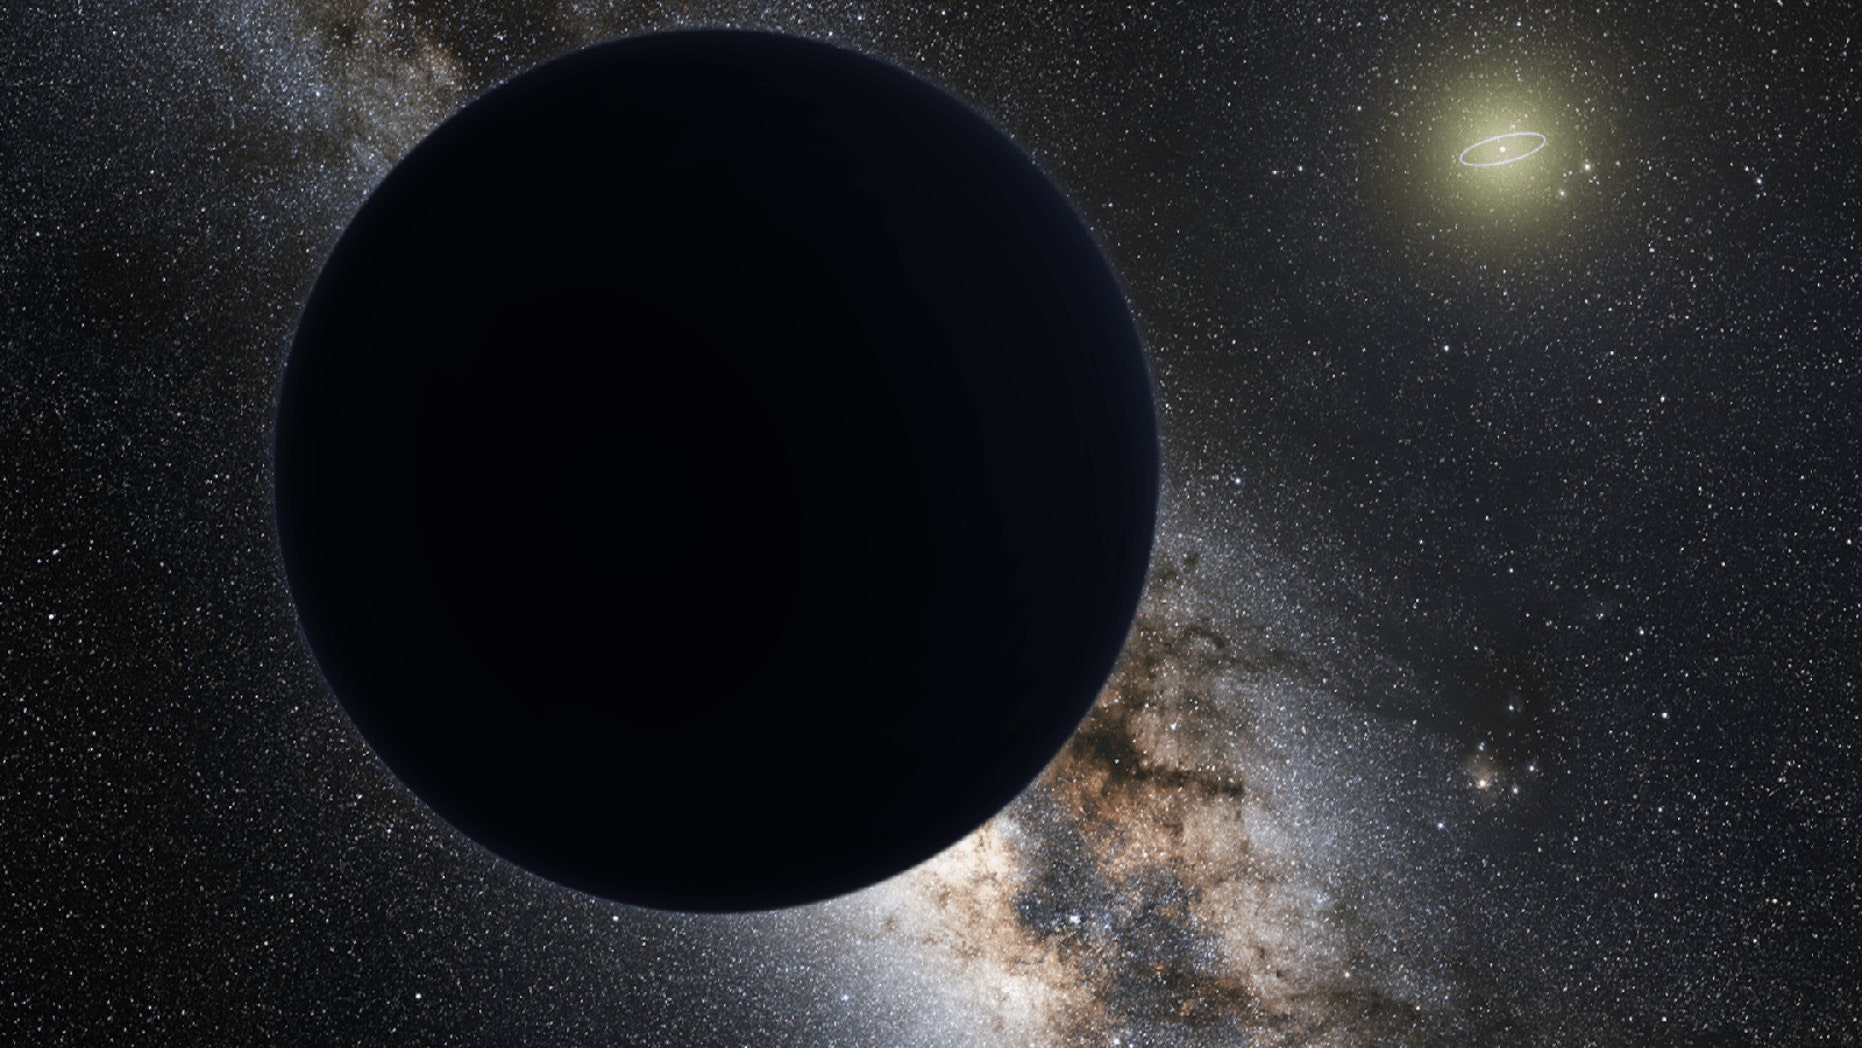 """A possible """"Planet Nine"""" in Earth's solar system would orbit far beyond Neptune's orbit (visible as a bright ring around the sun in this artist's illustration)."""